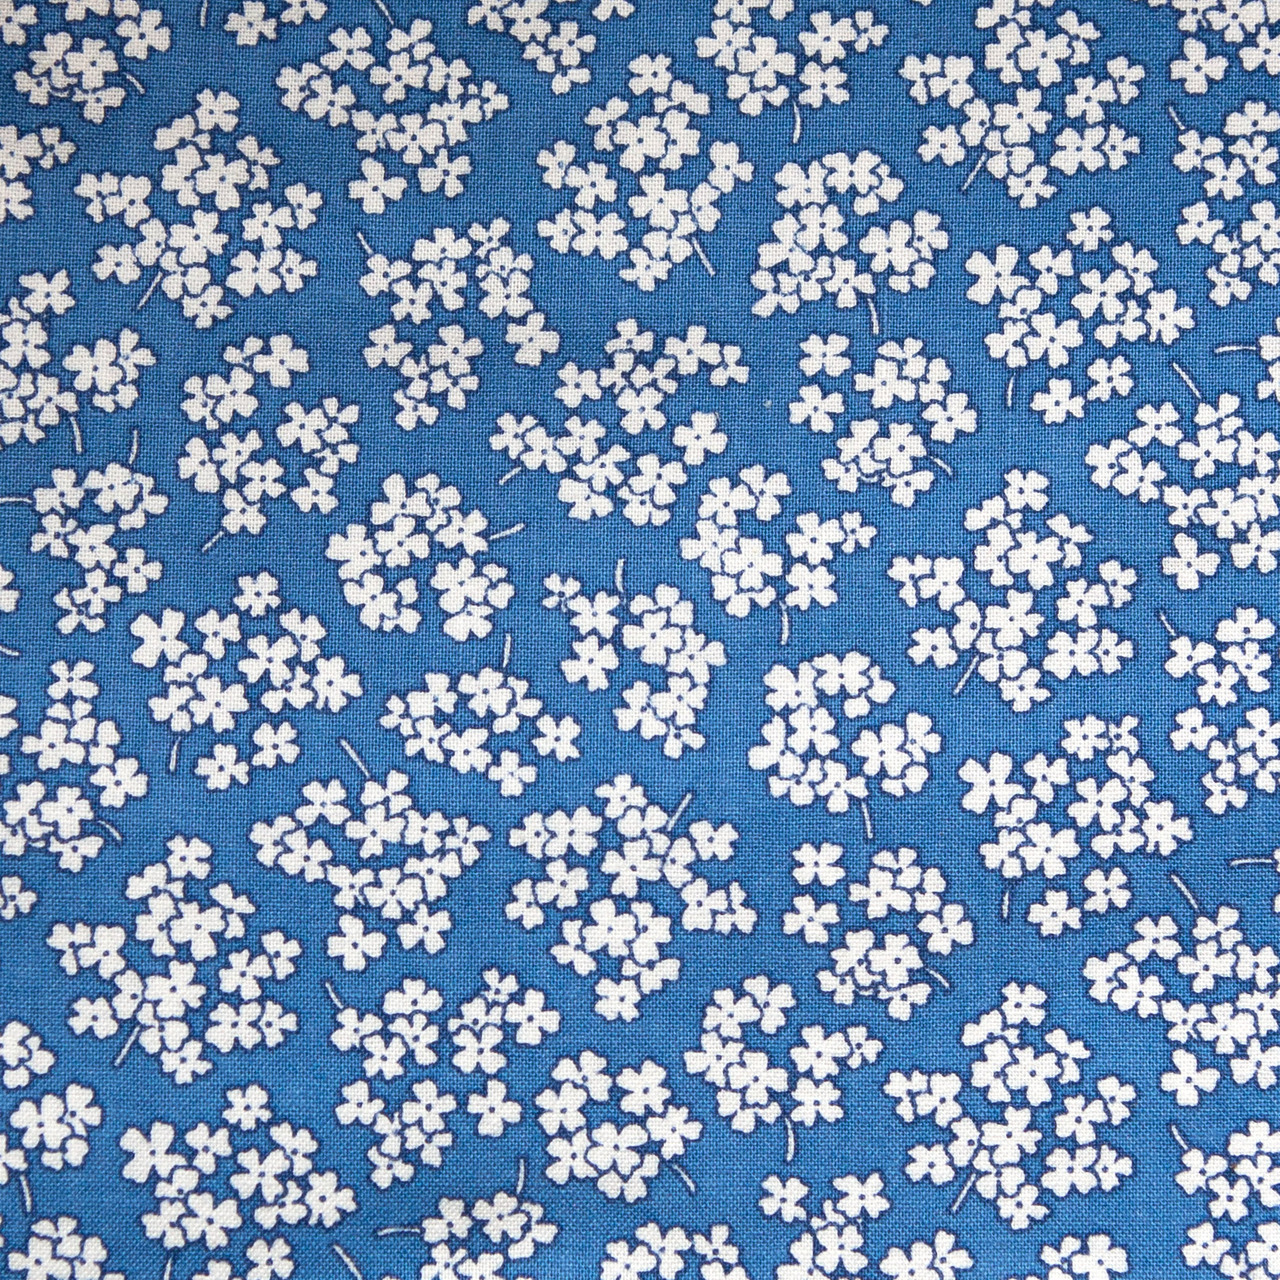 Babys Breath print scrubs fabric for the operating room hat